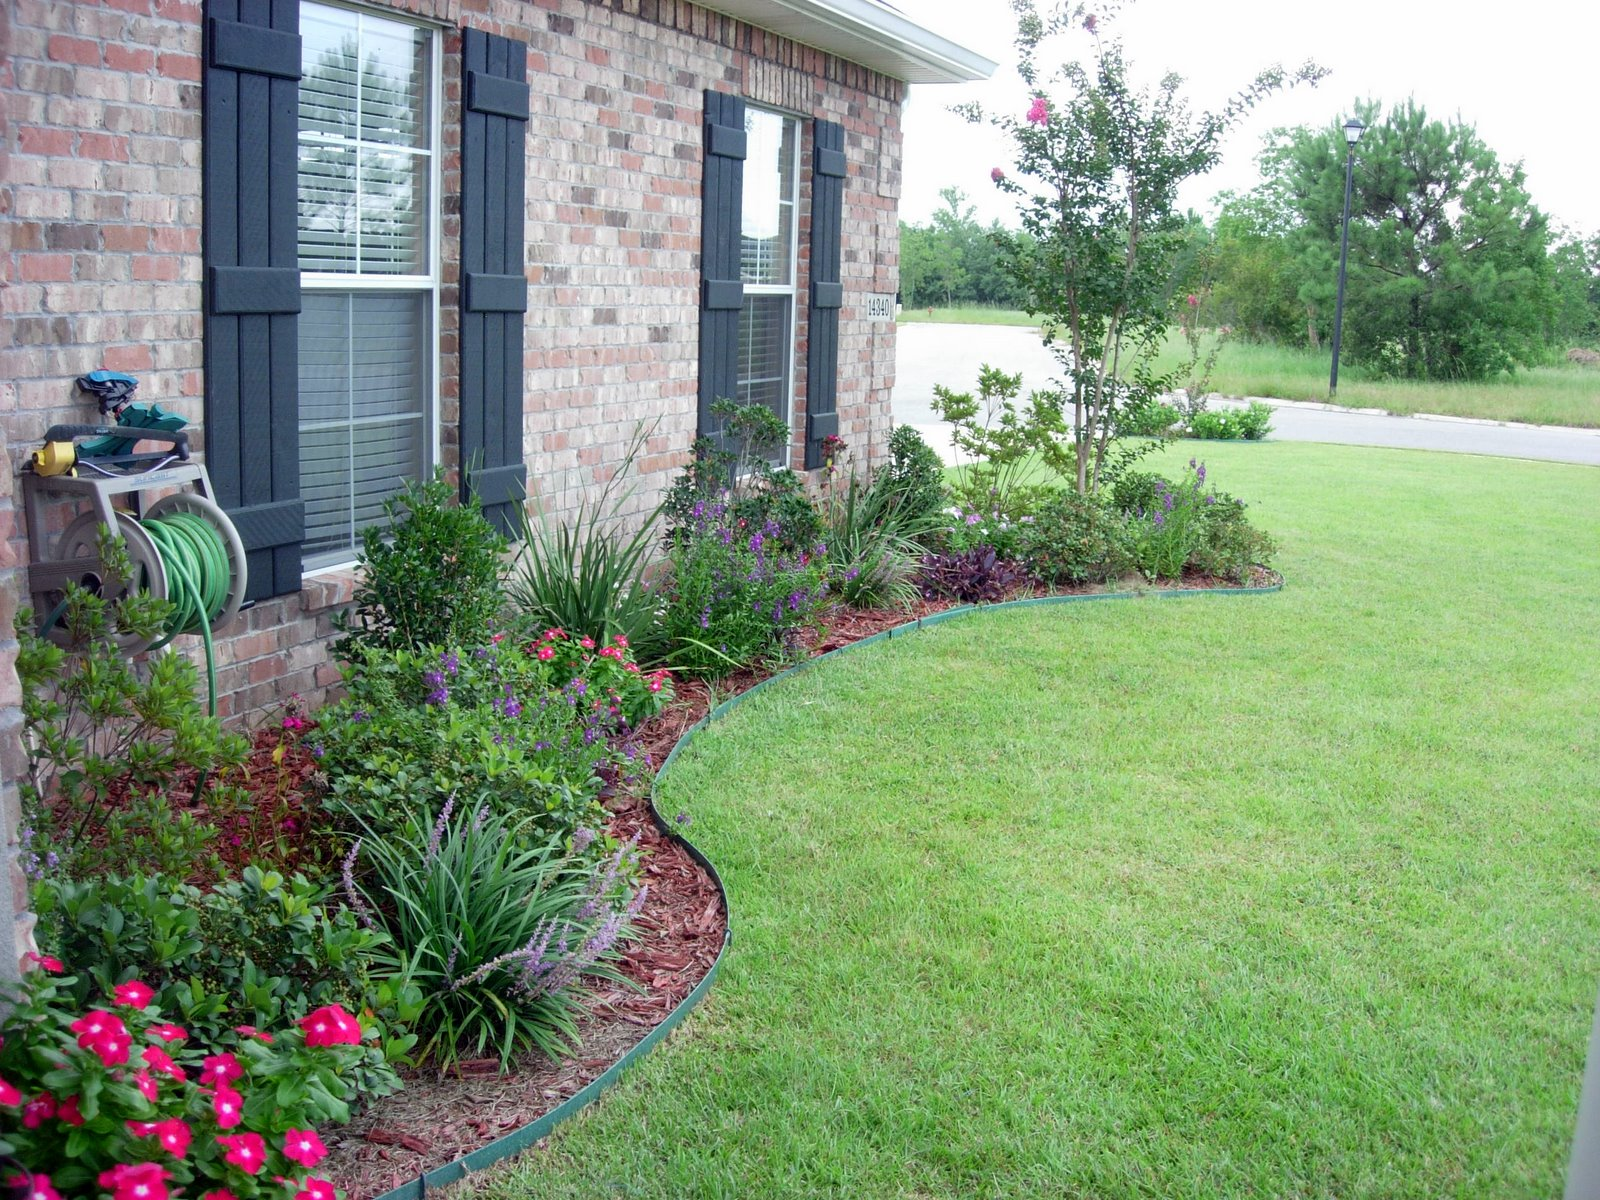 D i y d e s i g n curb appeal part 2 the landscaping for Garden bed design ideas